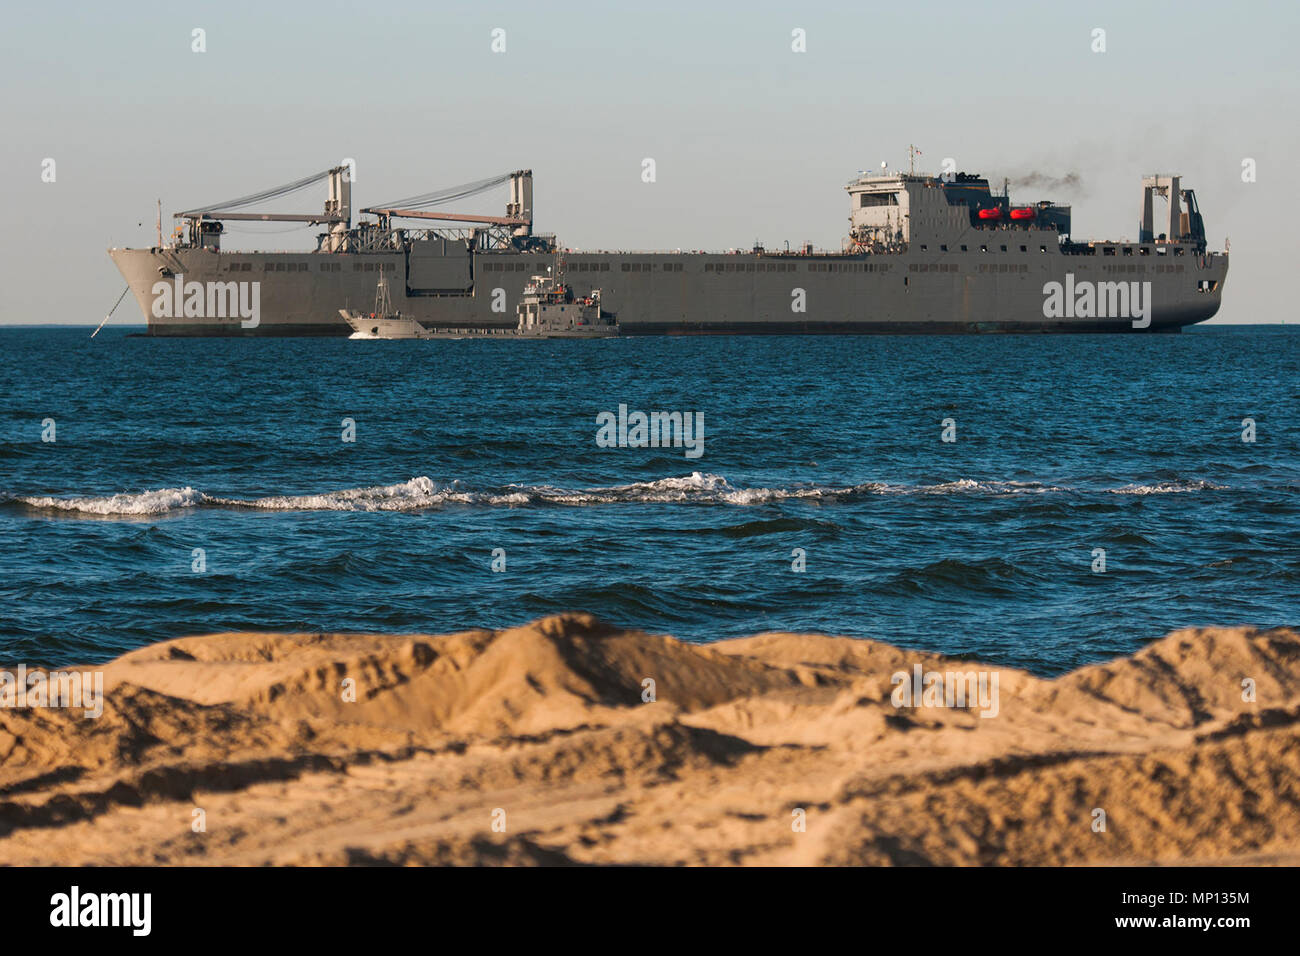 Army Landing Craft High Resolution Stock Photography And Images Alamy